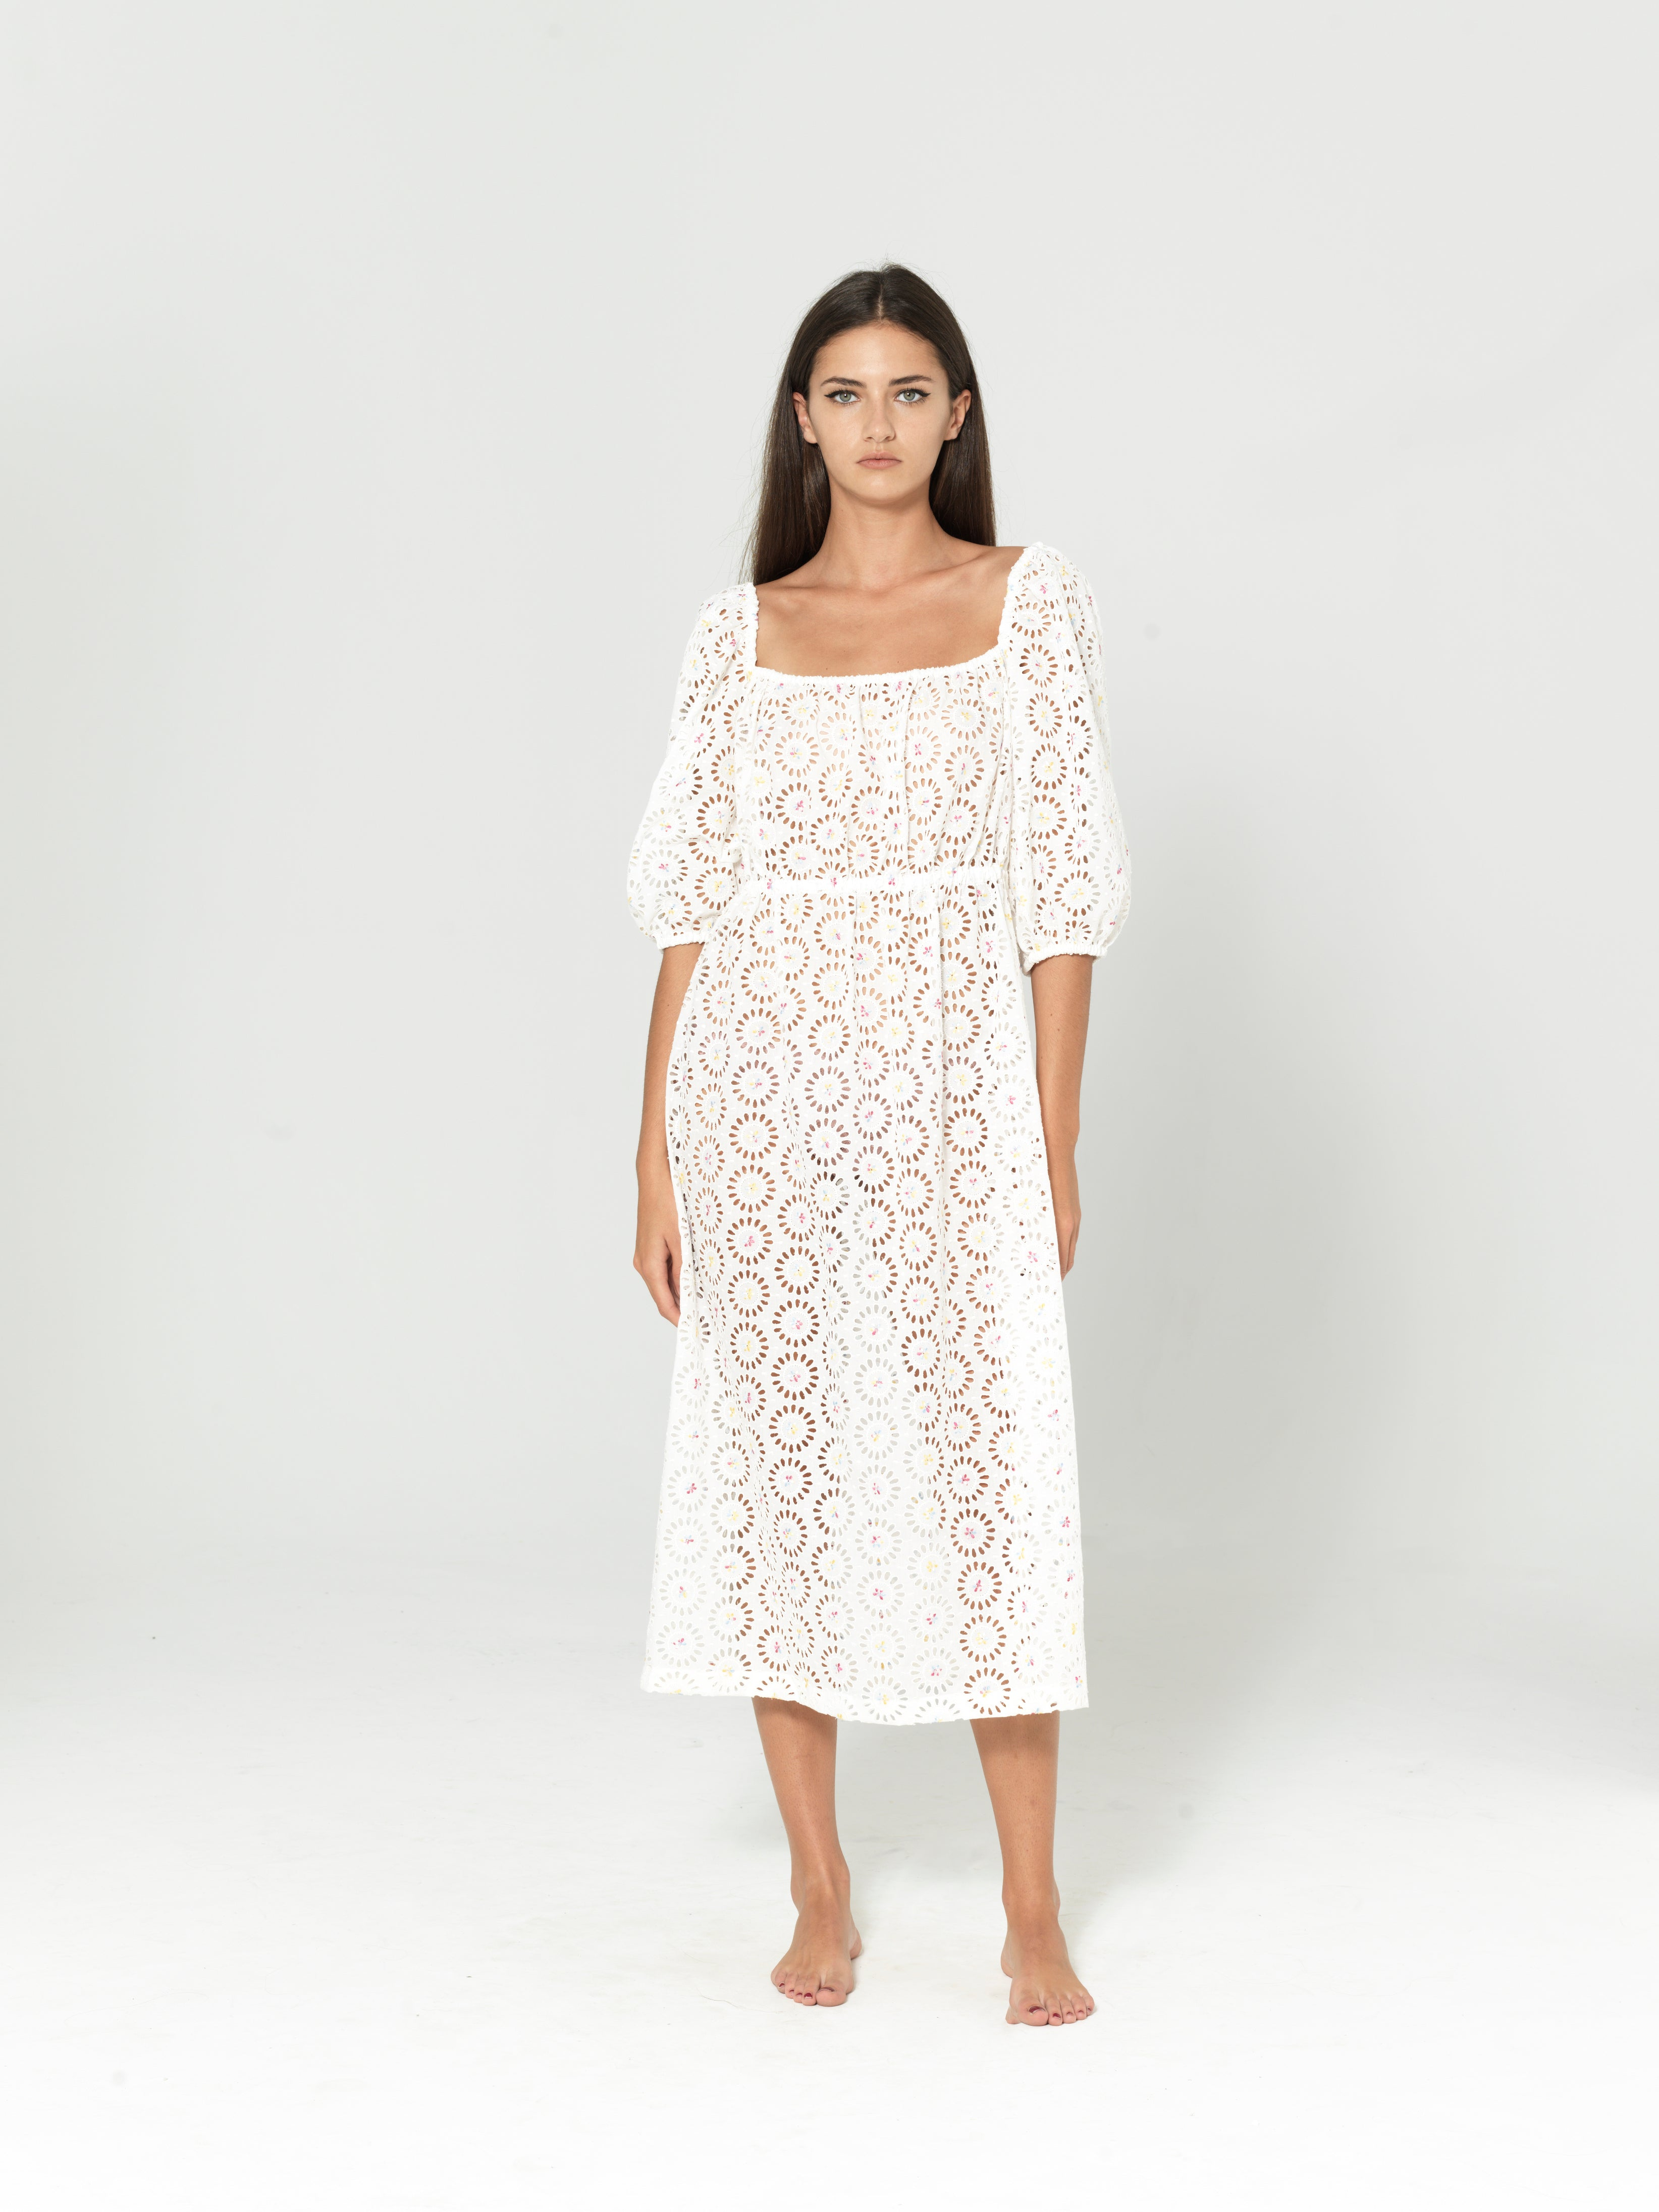 COTTON ENGLISH EMBROIDERY SHOULDER DRESS